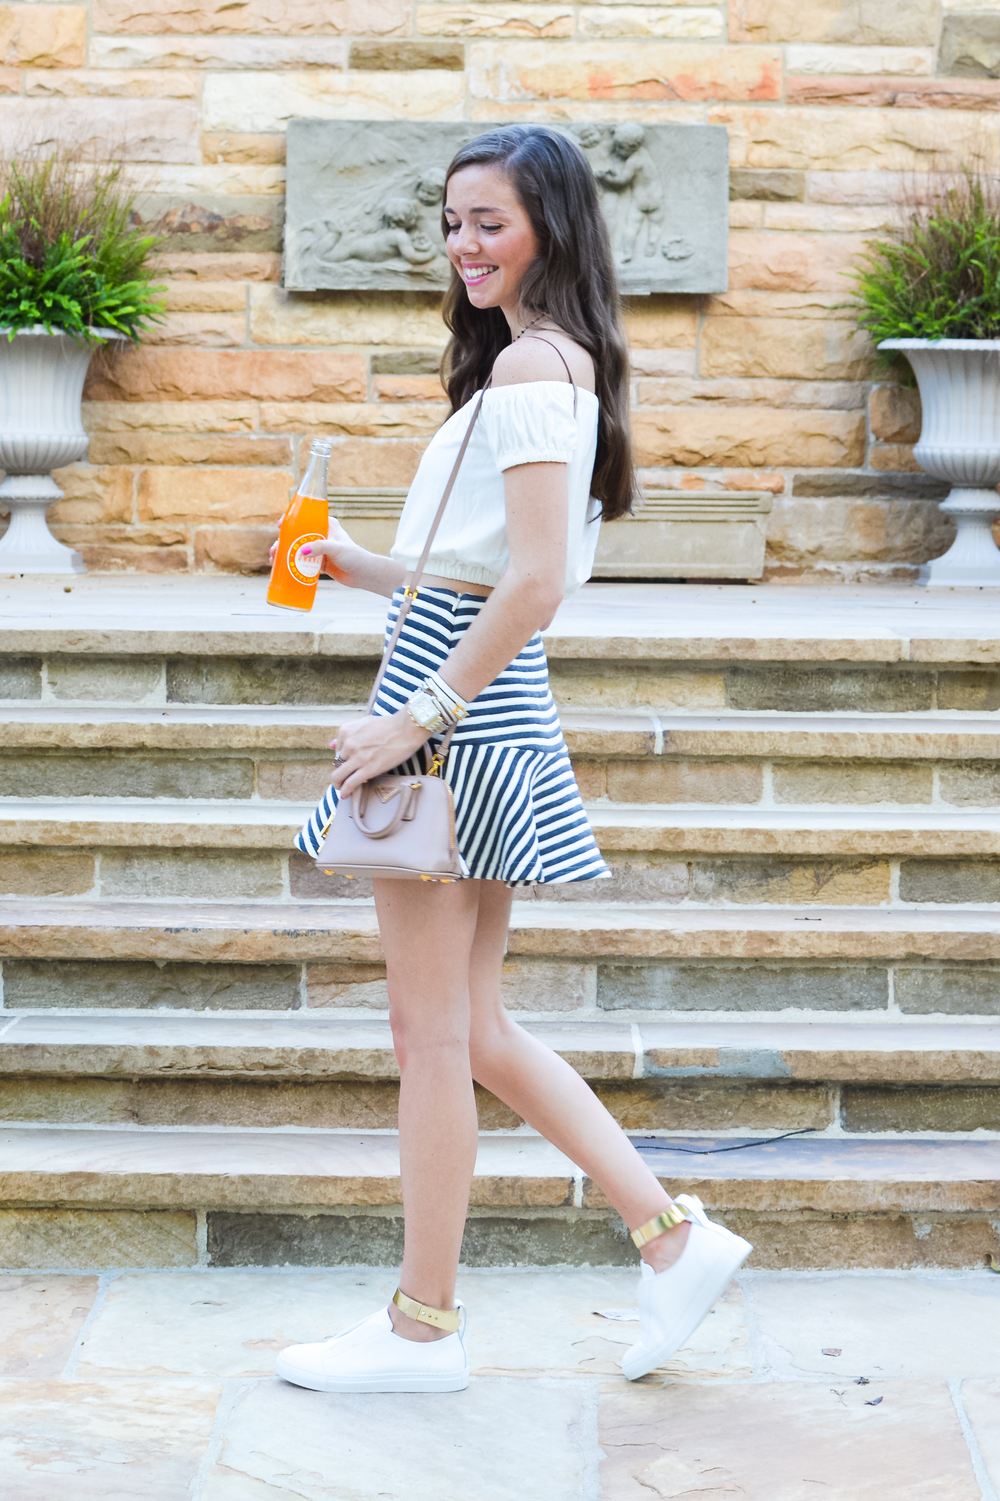 fashion blogger lcb style goop sneakers (19 of 39).jpg